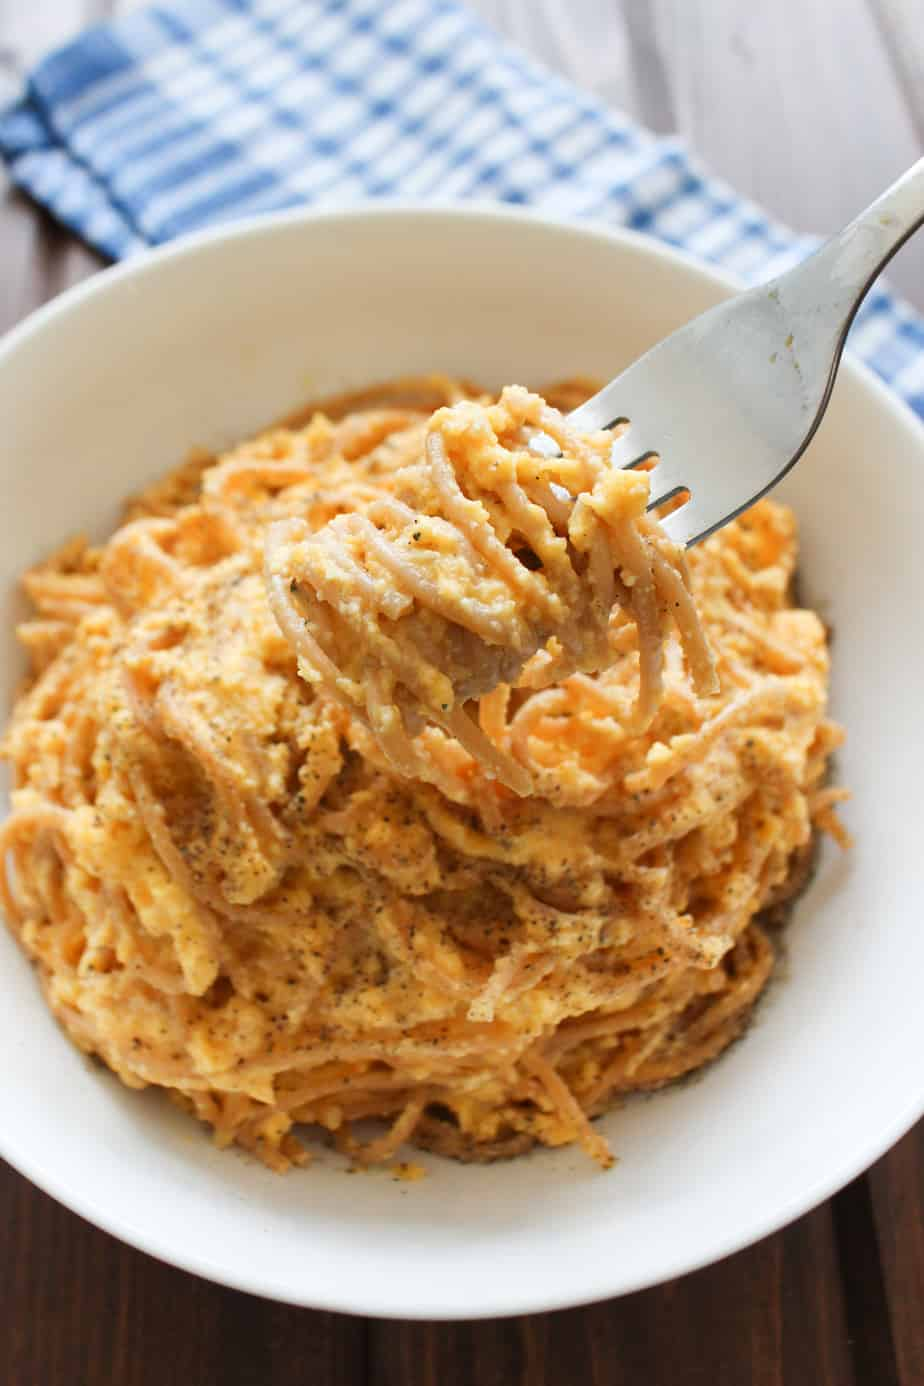 Creamy Butternut Squash Sauce with Red Lentil Spaghetti | Frugal Nutrition